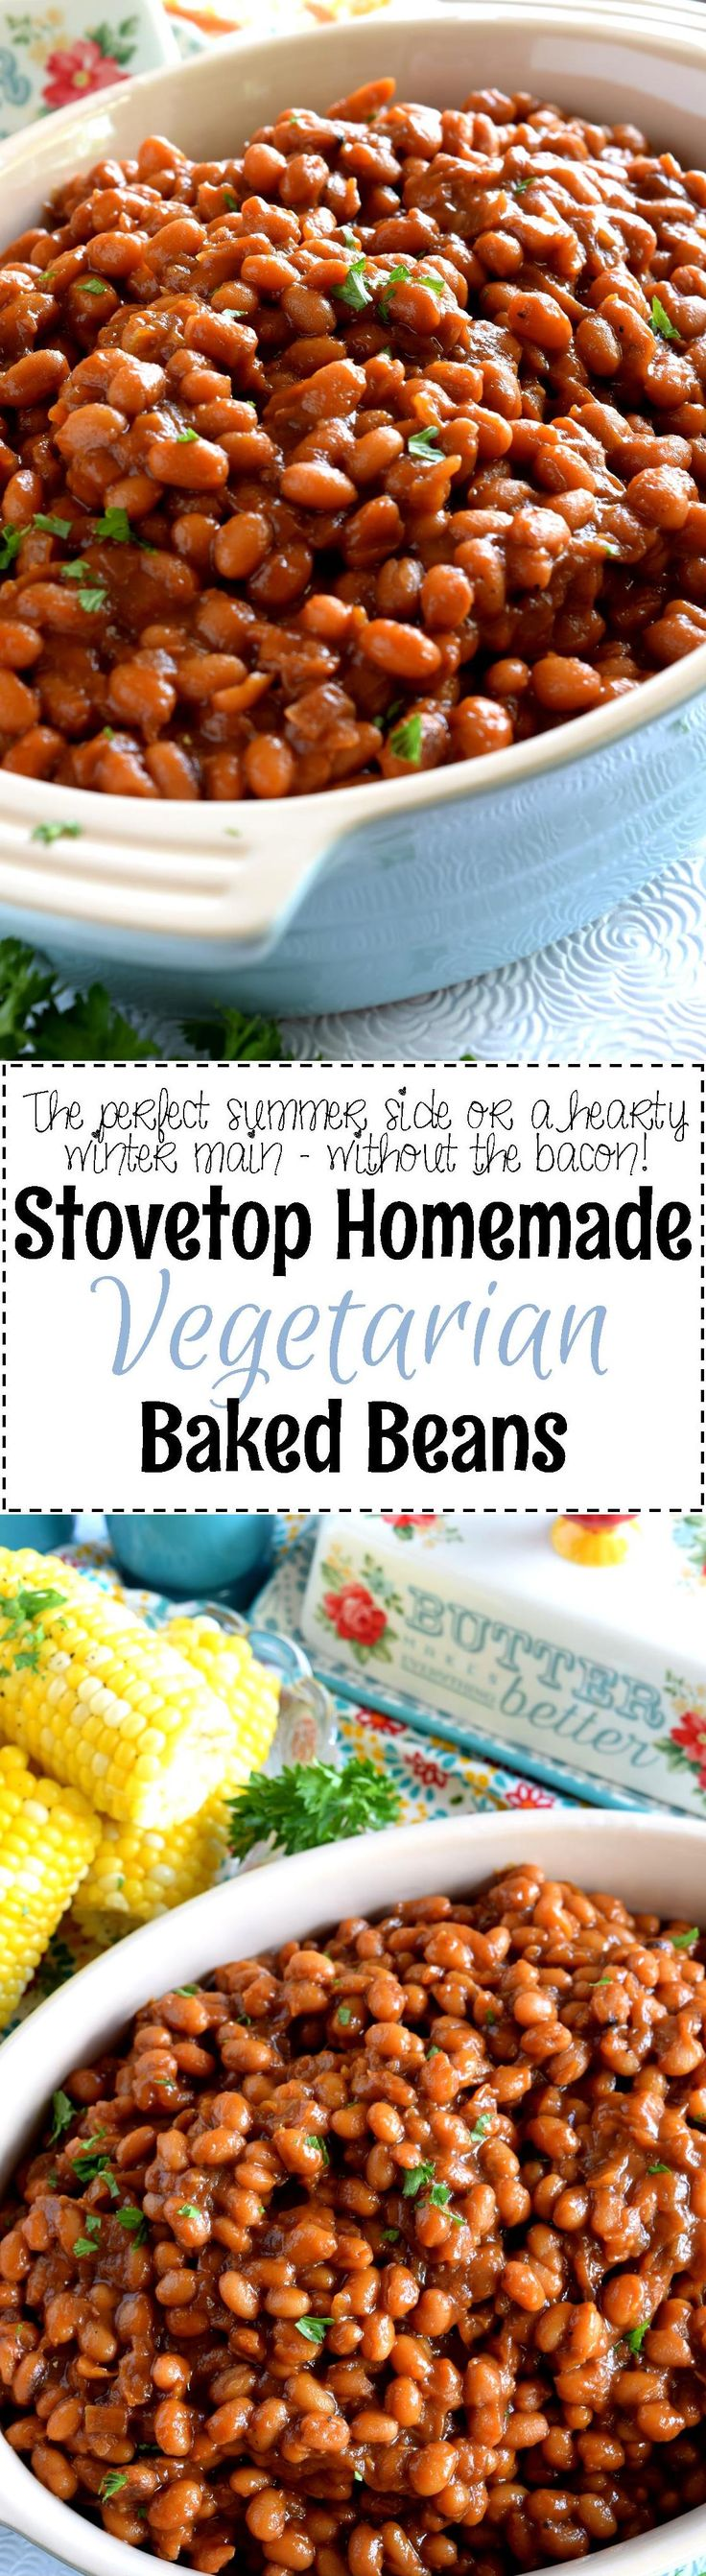 Stovetop Homemade Vegetarian Baked Beans - Who says Homemade Baked Beans needs to have bacon?  And who says they need to be baked?  Stovetop Homemade Vegetarian Baked Beans are fast, cheap, and easy – and nobody will notice the missing pork product!